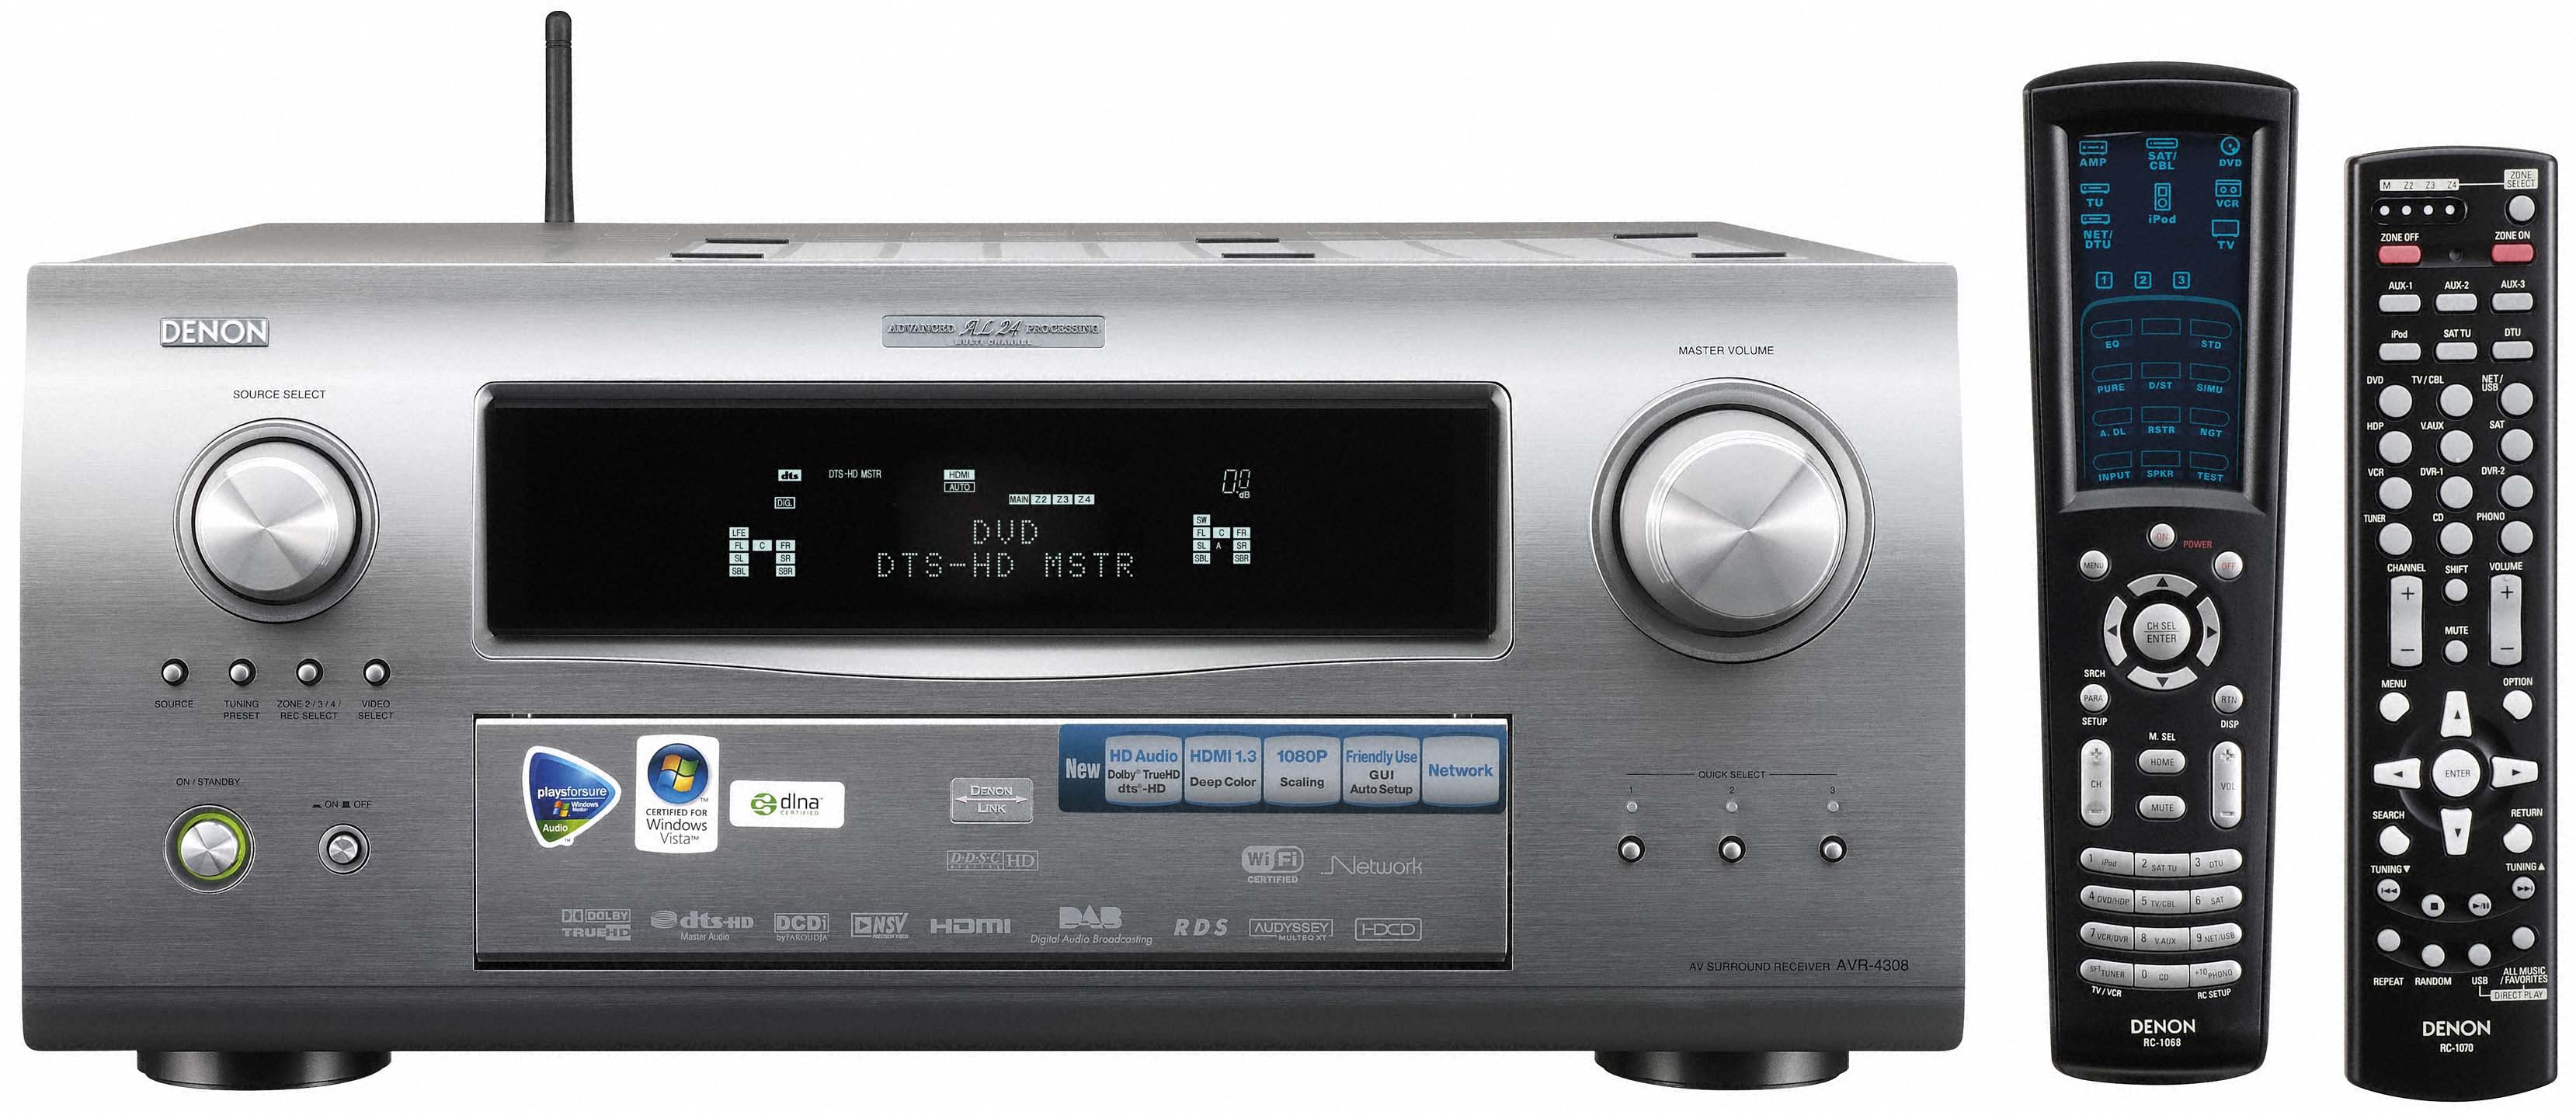 FOR SALE: For Sale: Used Mint condition Denon AVR-4308